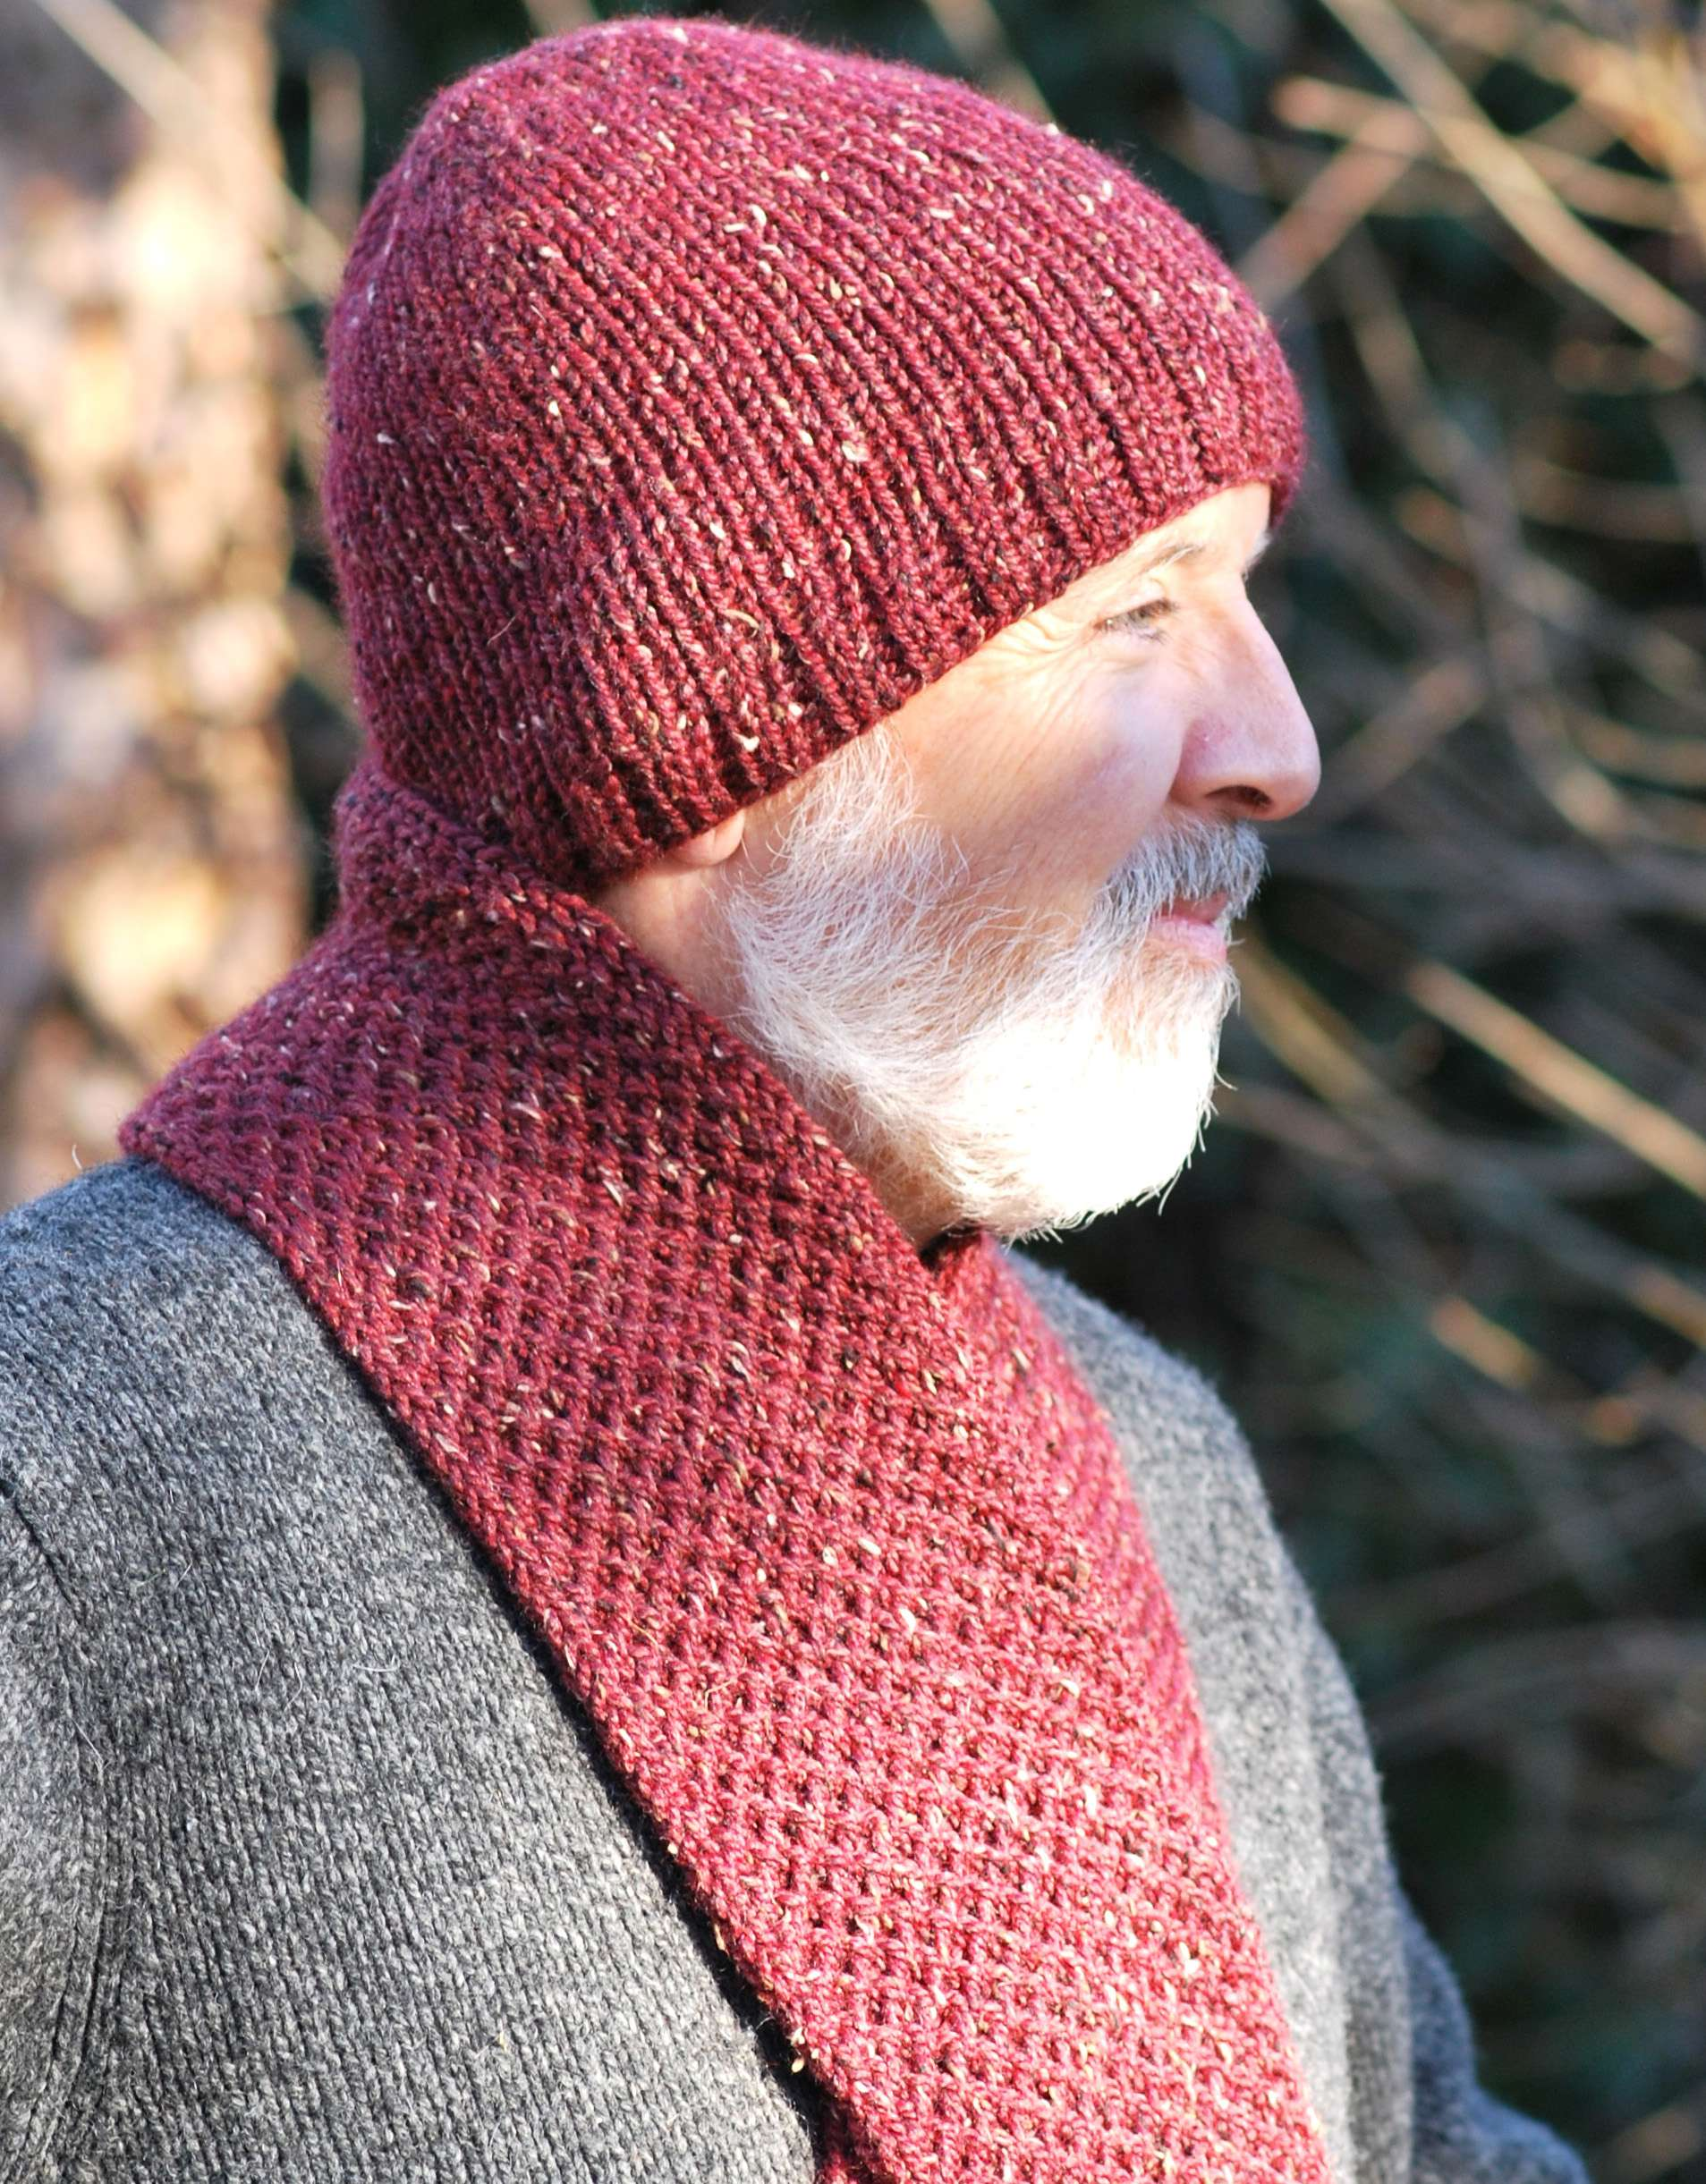 Men's Basic Hat and Scarf (double knit)